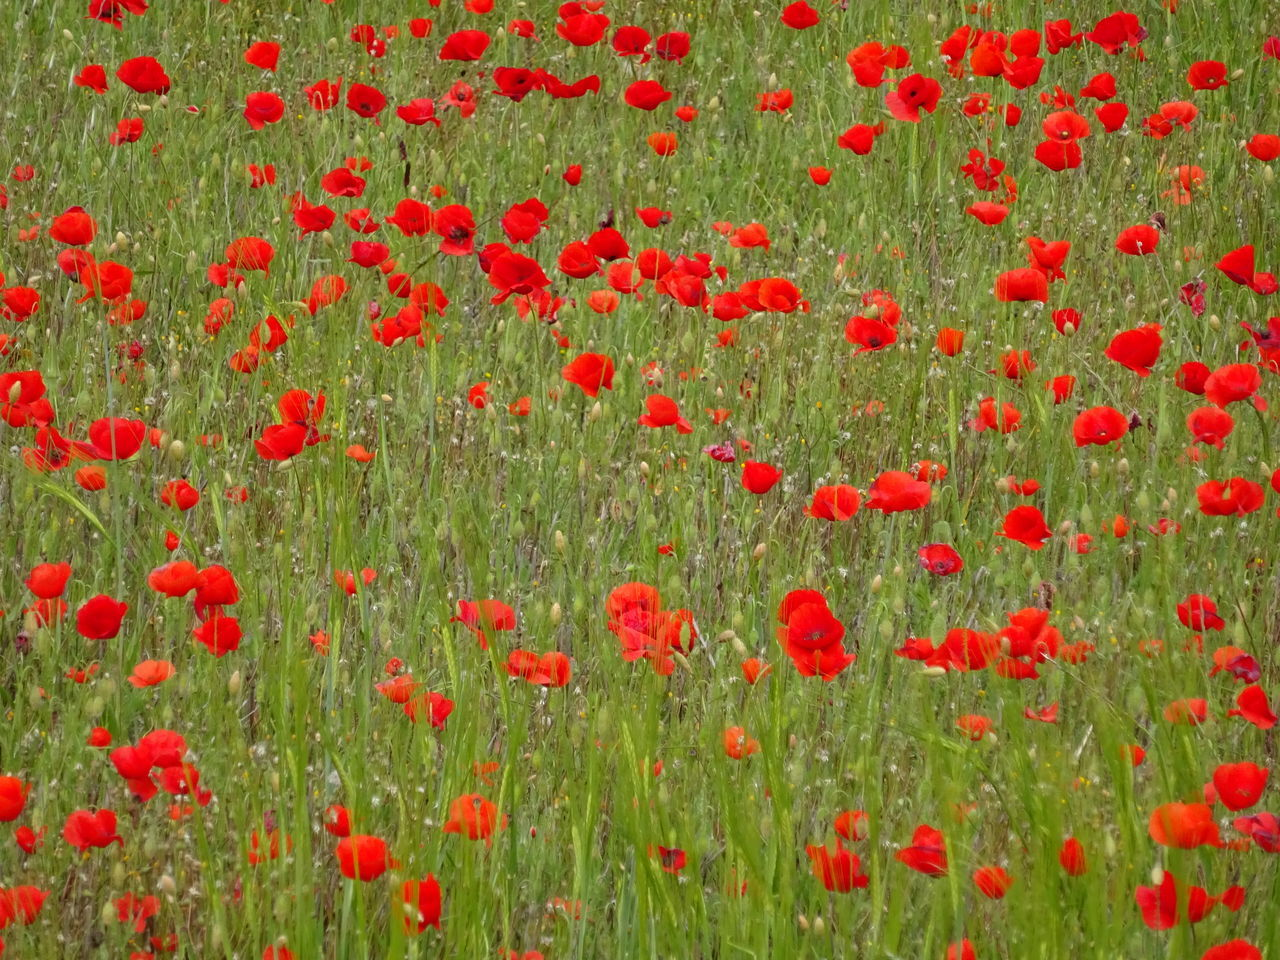 flower, growth, freshness, red, fragility, beauty in nature, plant, nature, field, close-up, poppy, day, vibrant color, petal, springtime, full frame, garden, in bloom, abundance, blooming, flower head, wildflower, botany, outdoors, green color, tranquility, no people, formal garden, scenics